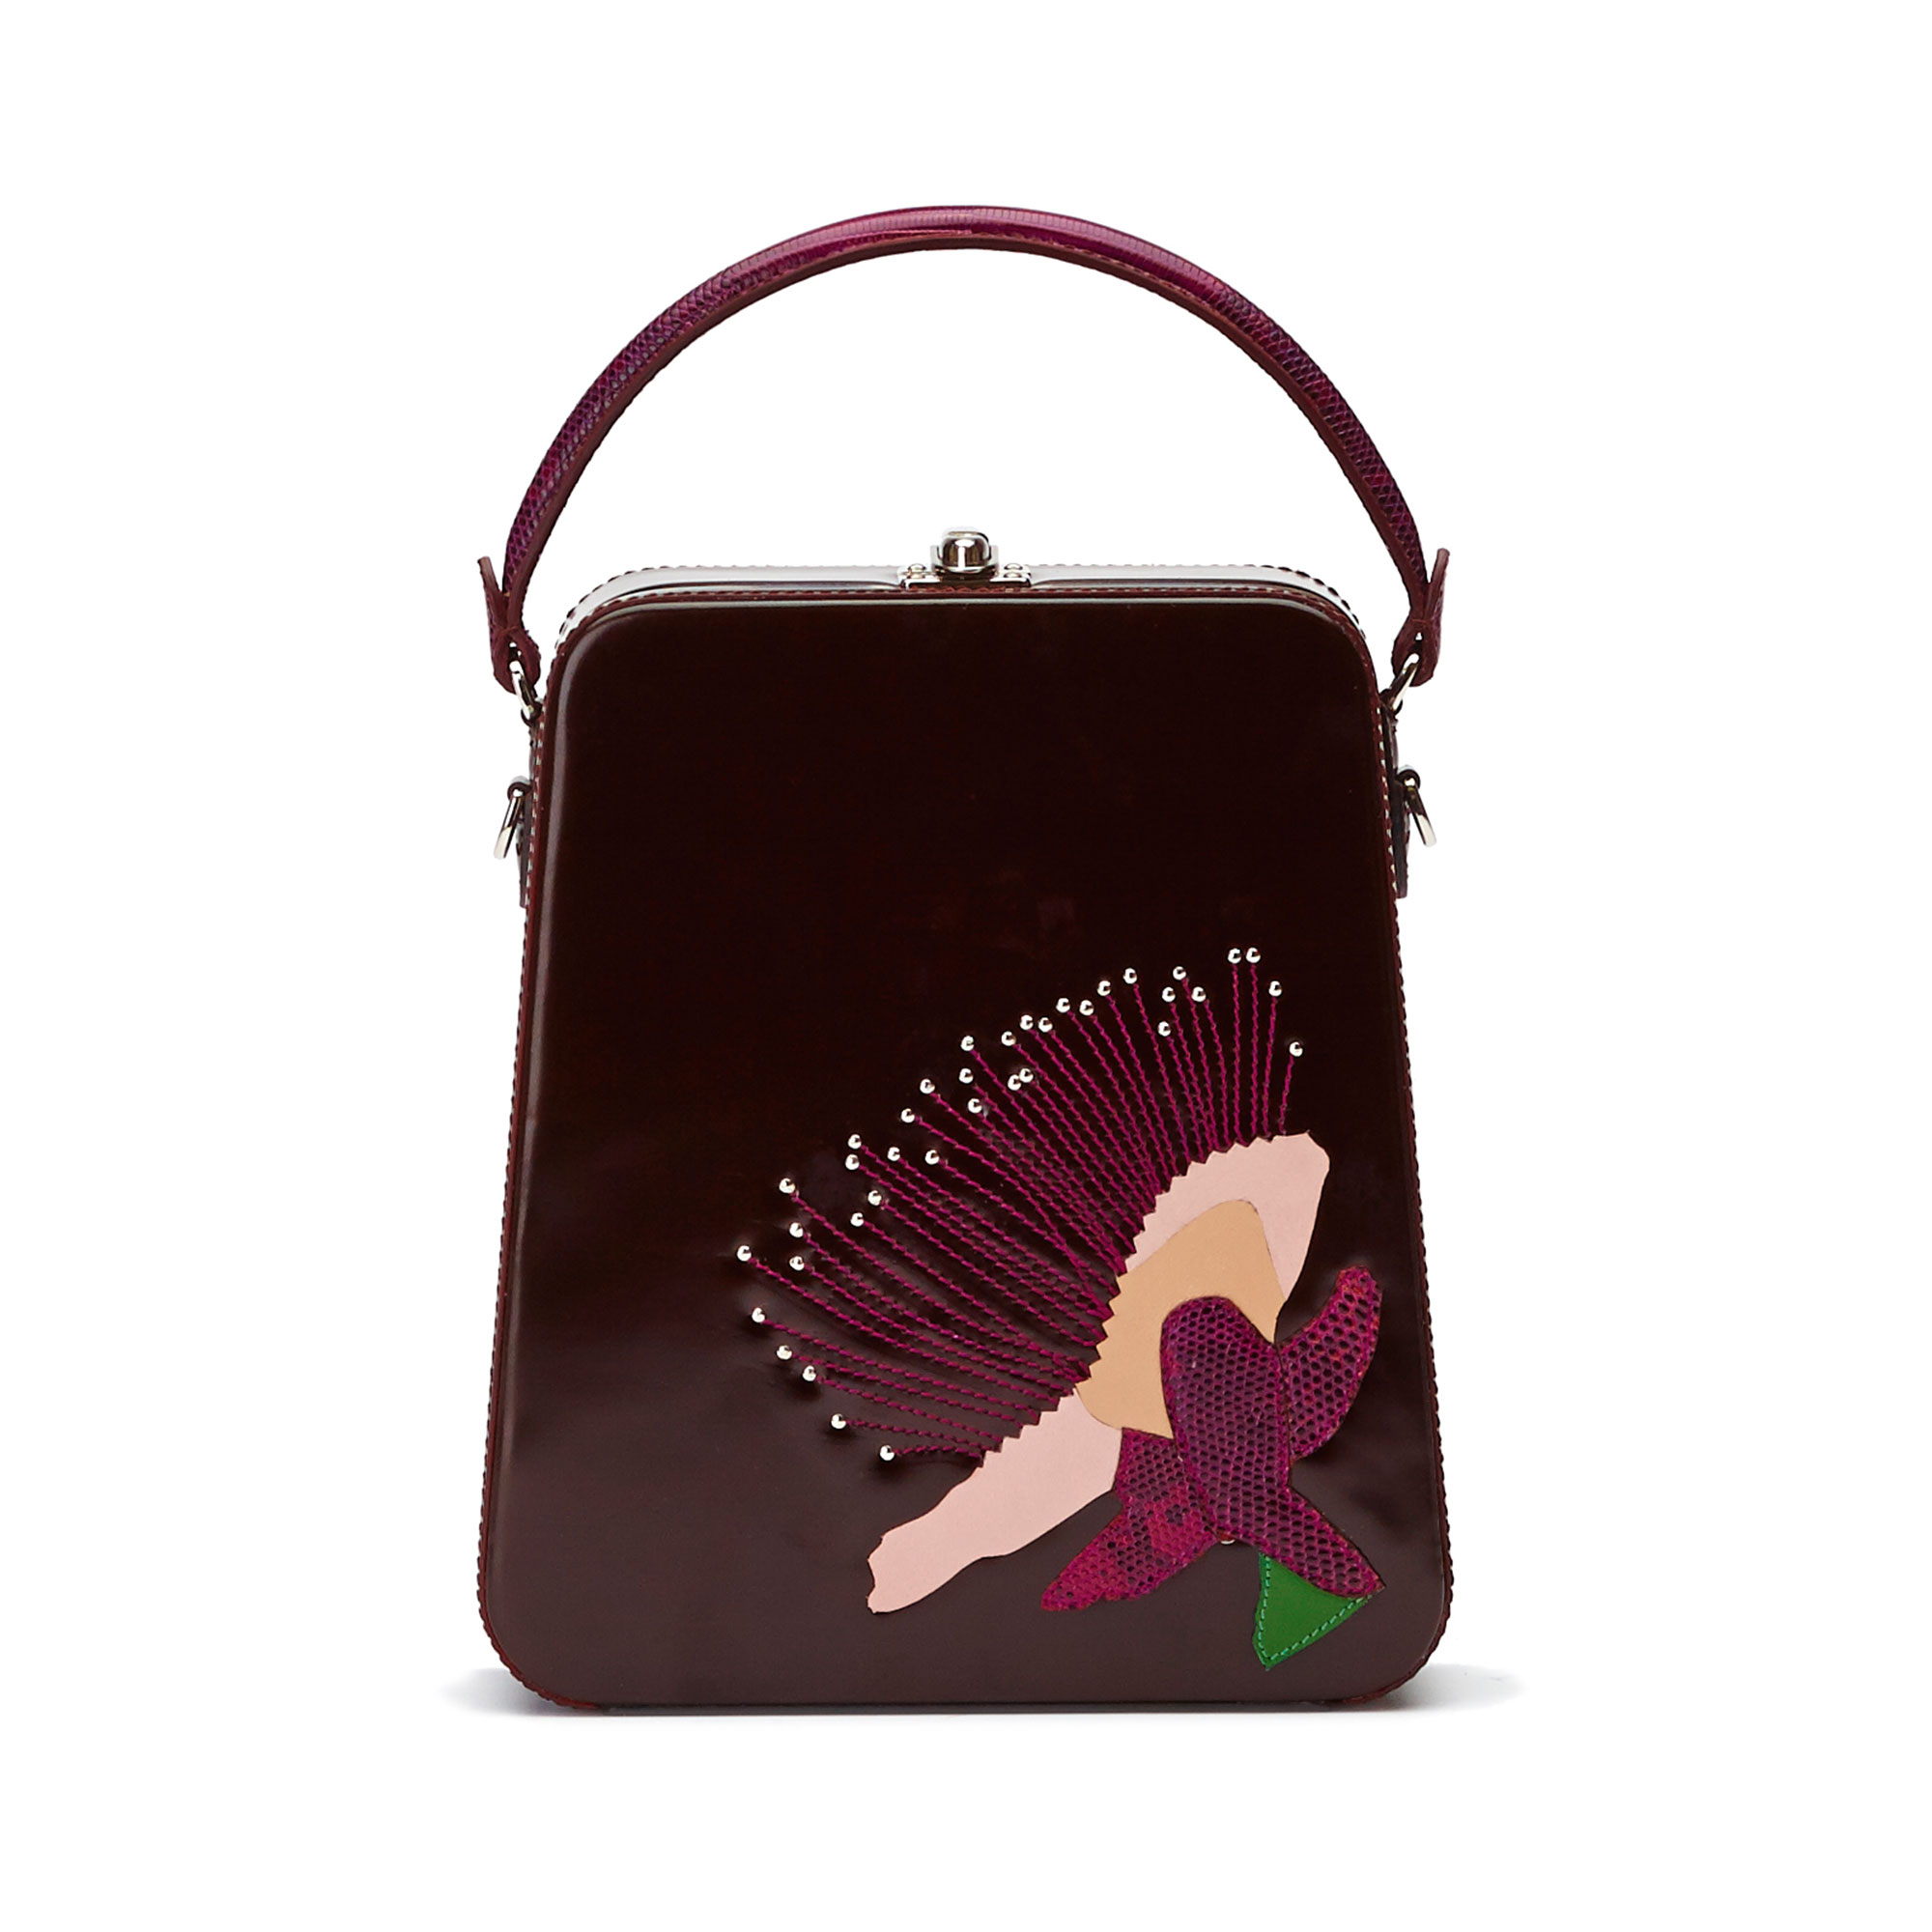 The bordeaux with embroidered flower brushed calf Tall Bertoncina bag by Bertoni 1949 01